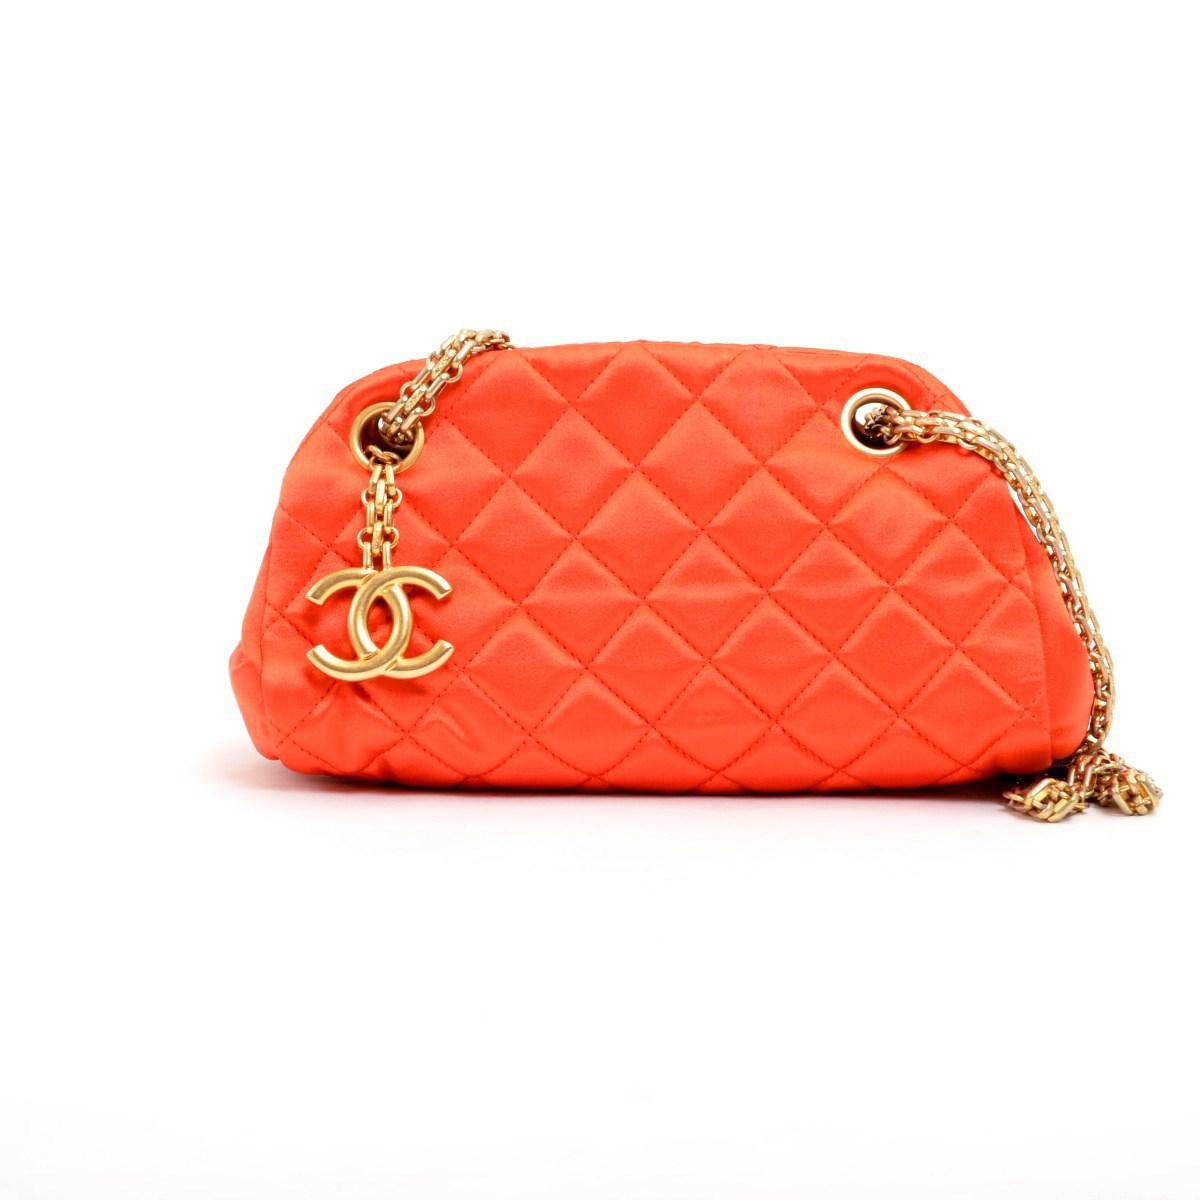 a2ea06e923db5a Chanel Satin Mini Bowling Bag Mademoiselle Shoulder Bag in Orange - Lyst